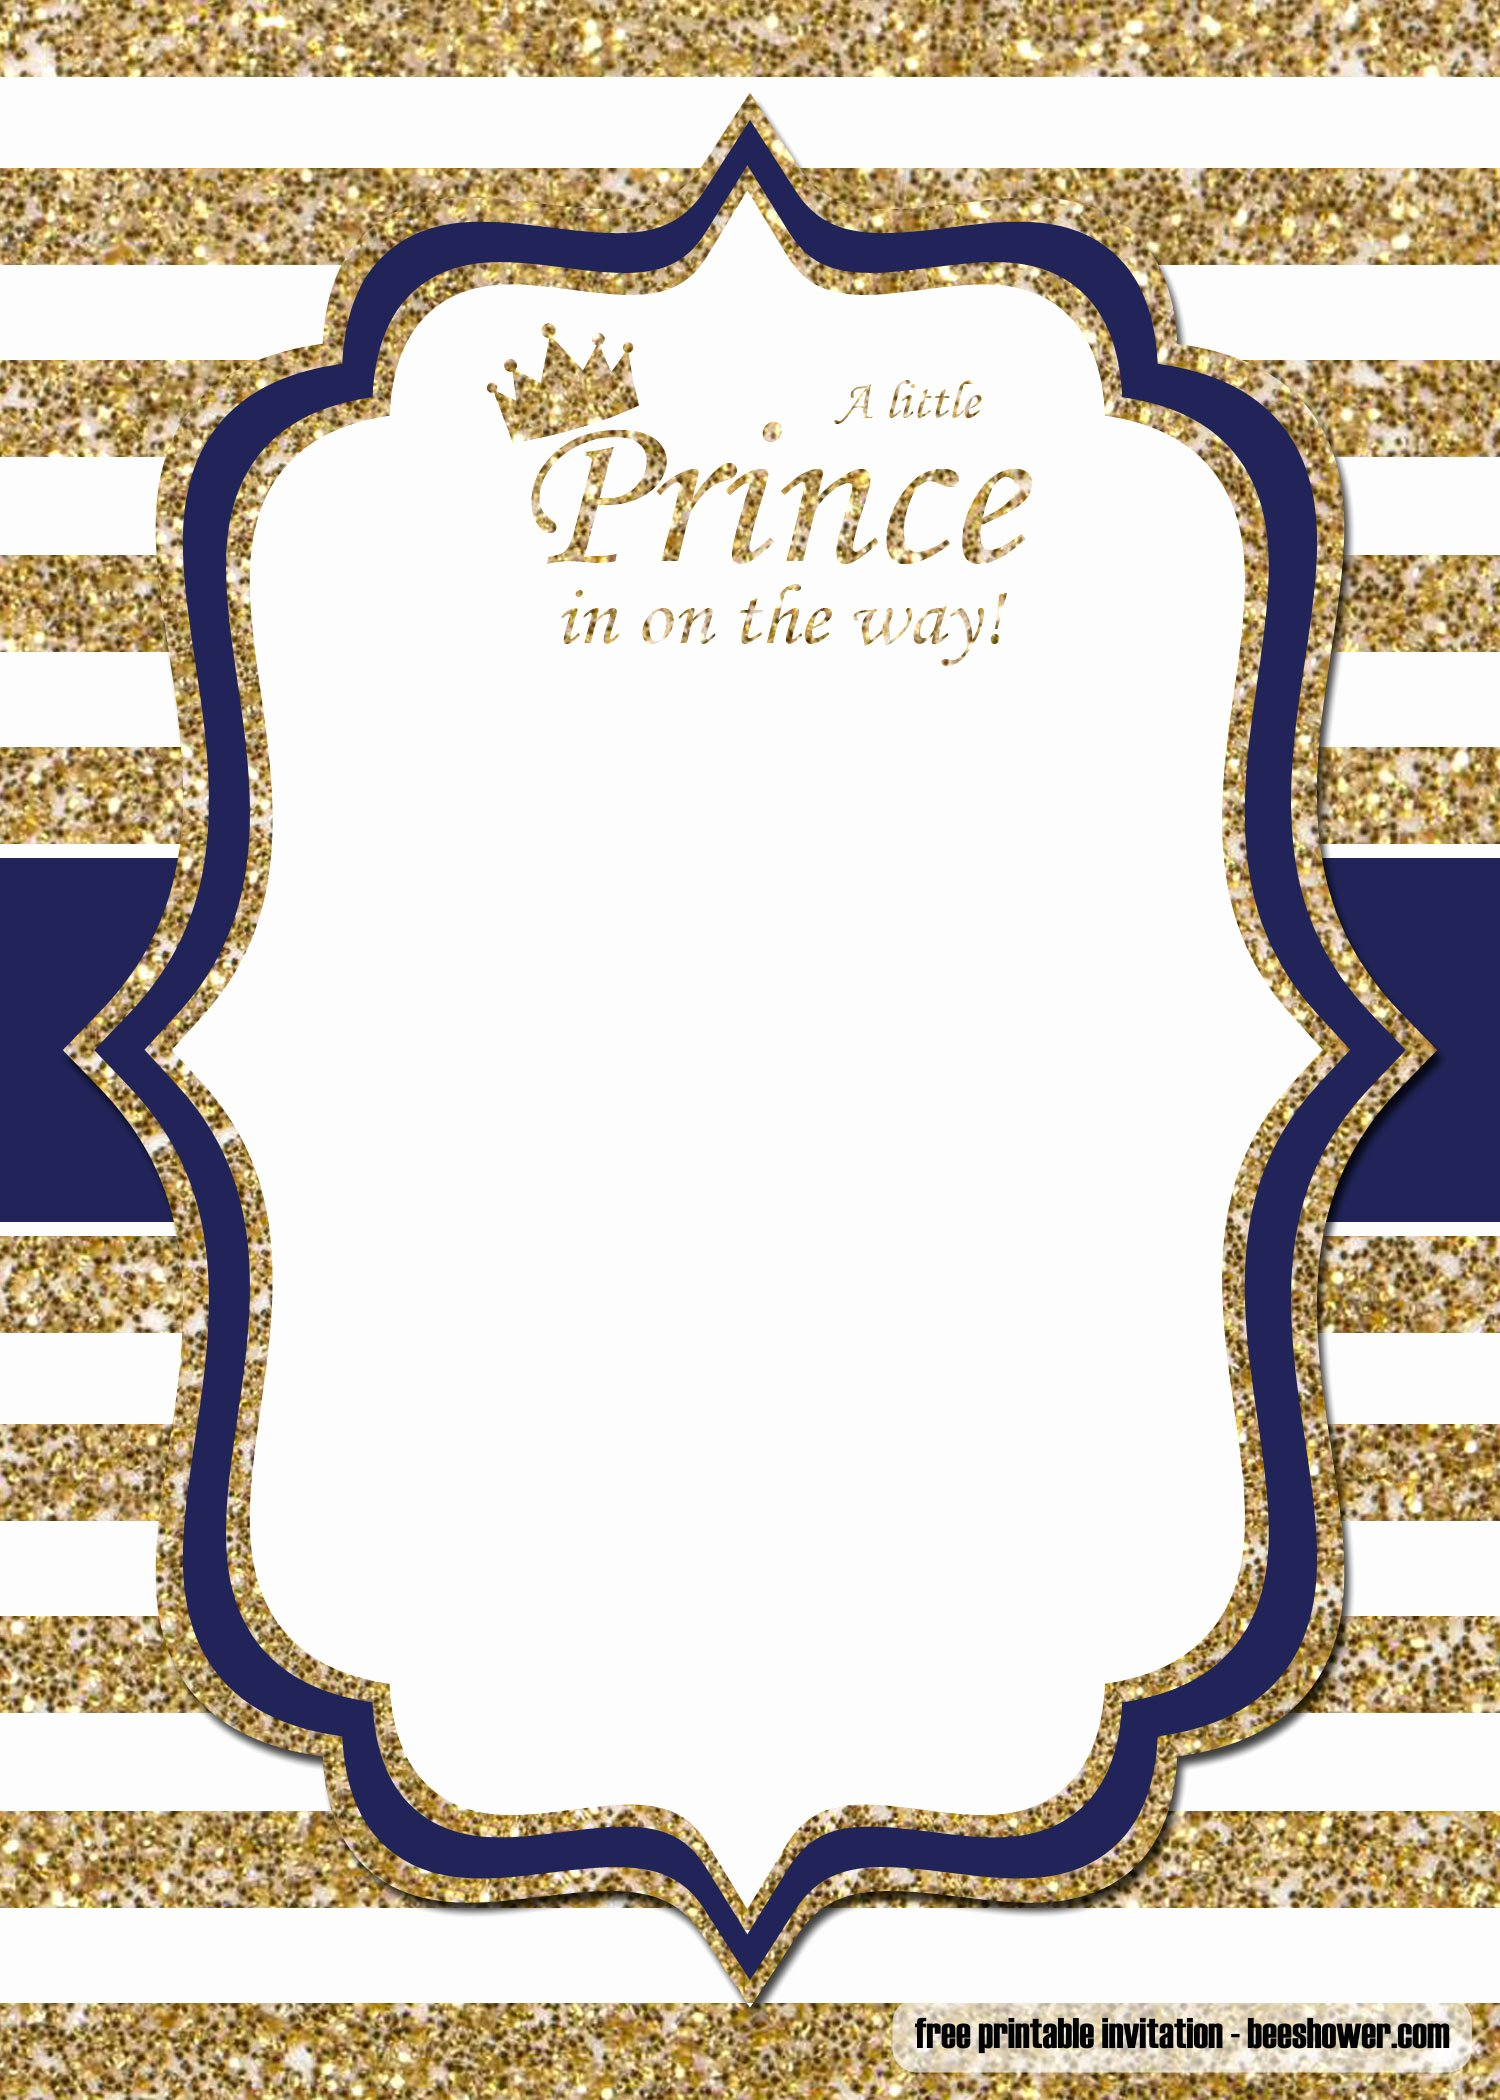 Royal Baby Shower Invitation Template Best Of Free Prince Baby Shower Invitations Templates – Free